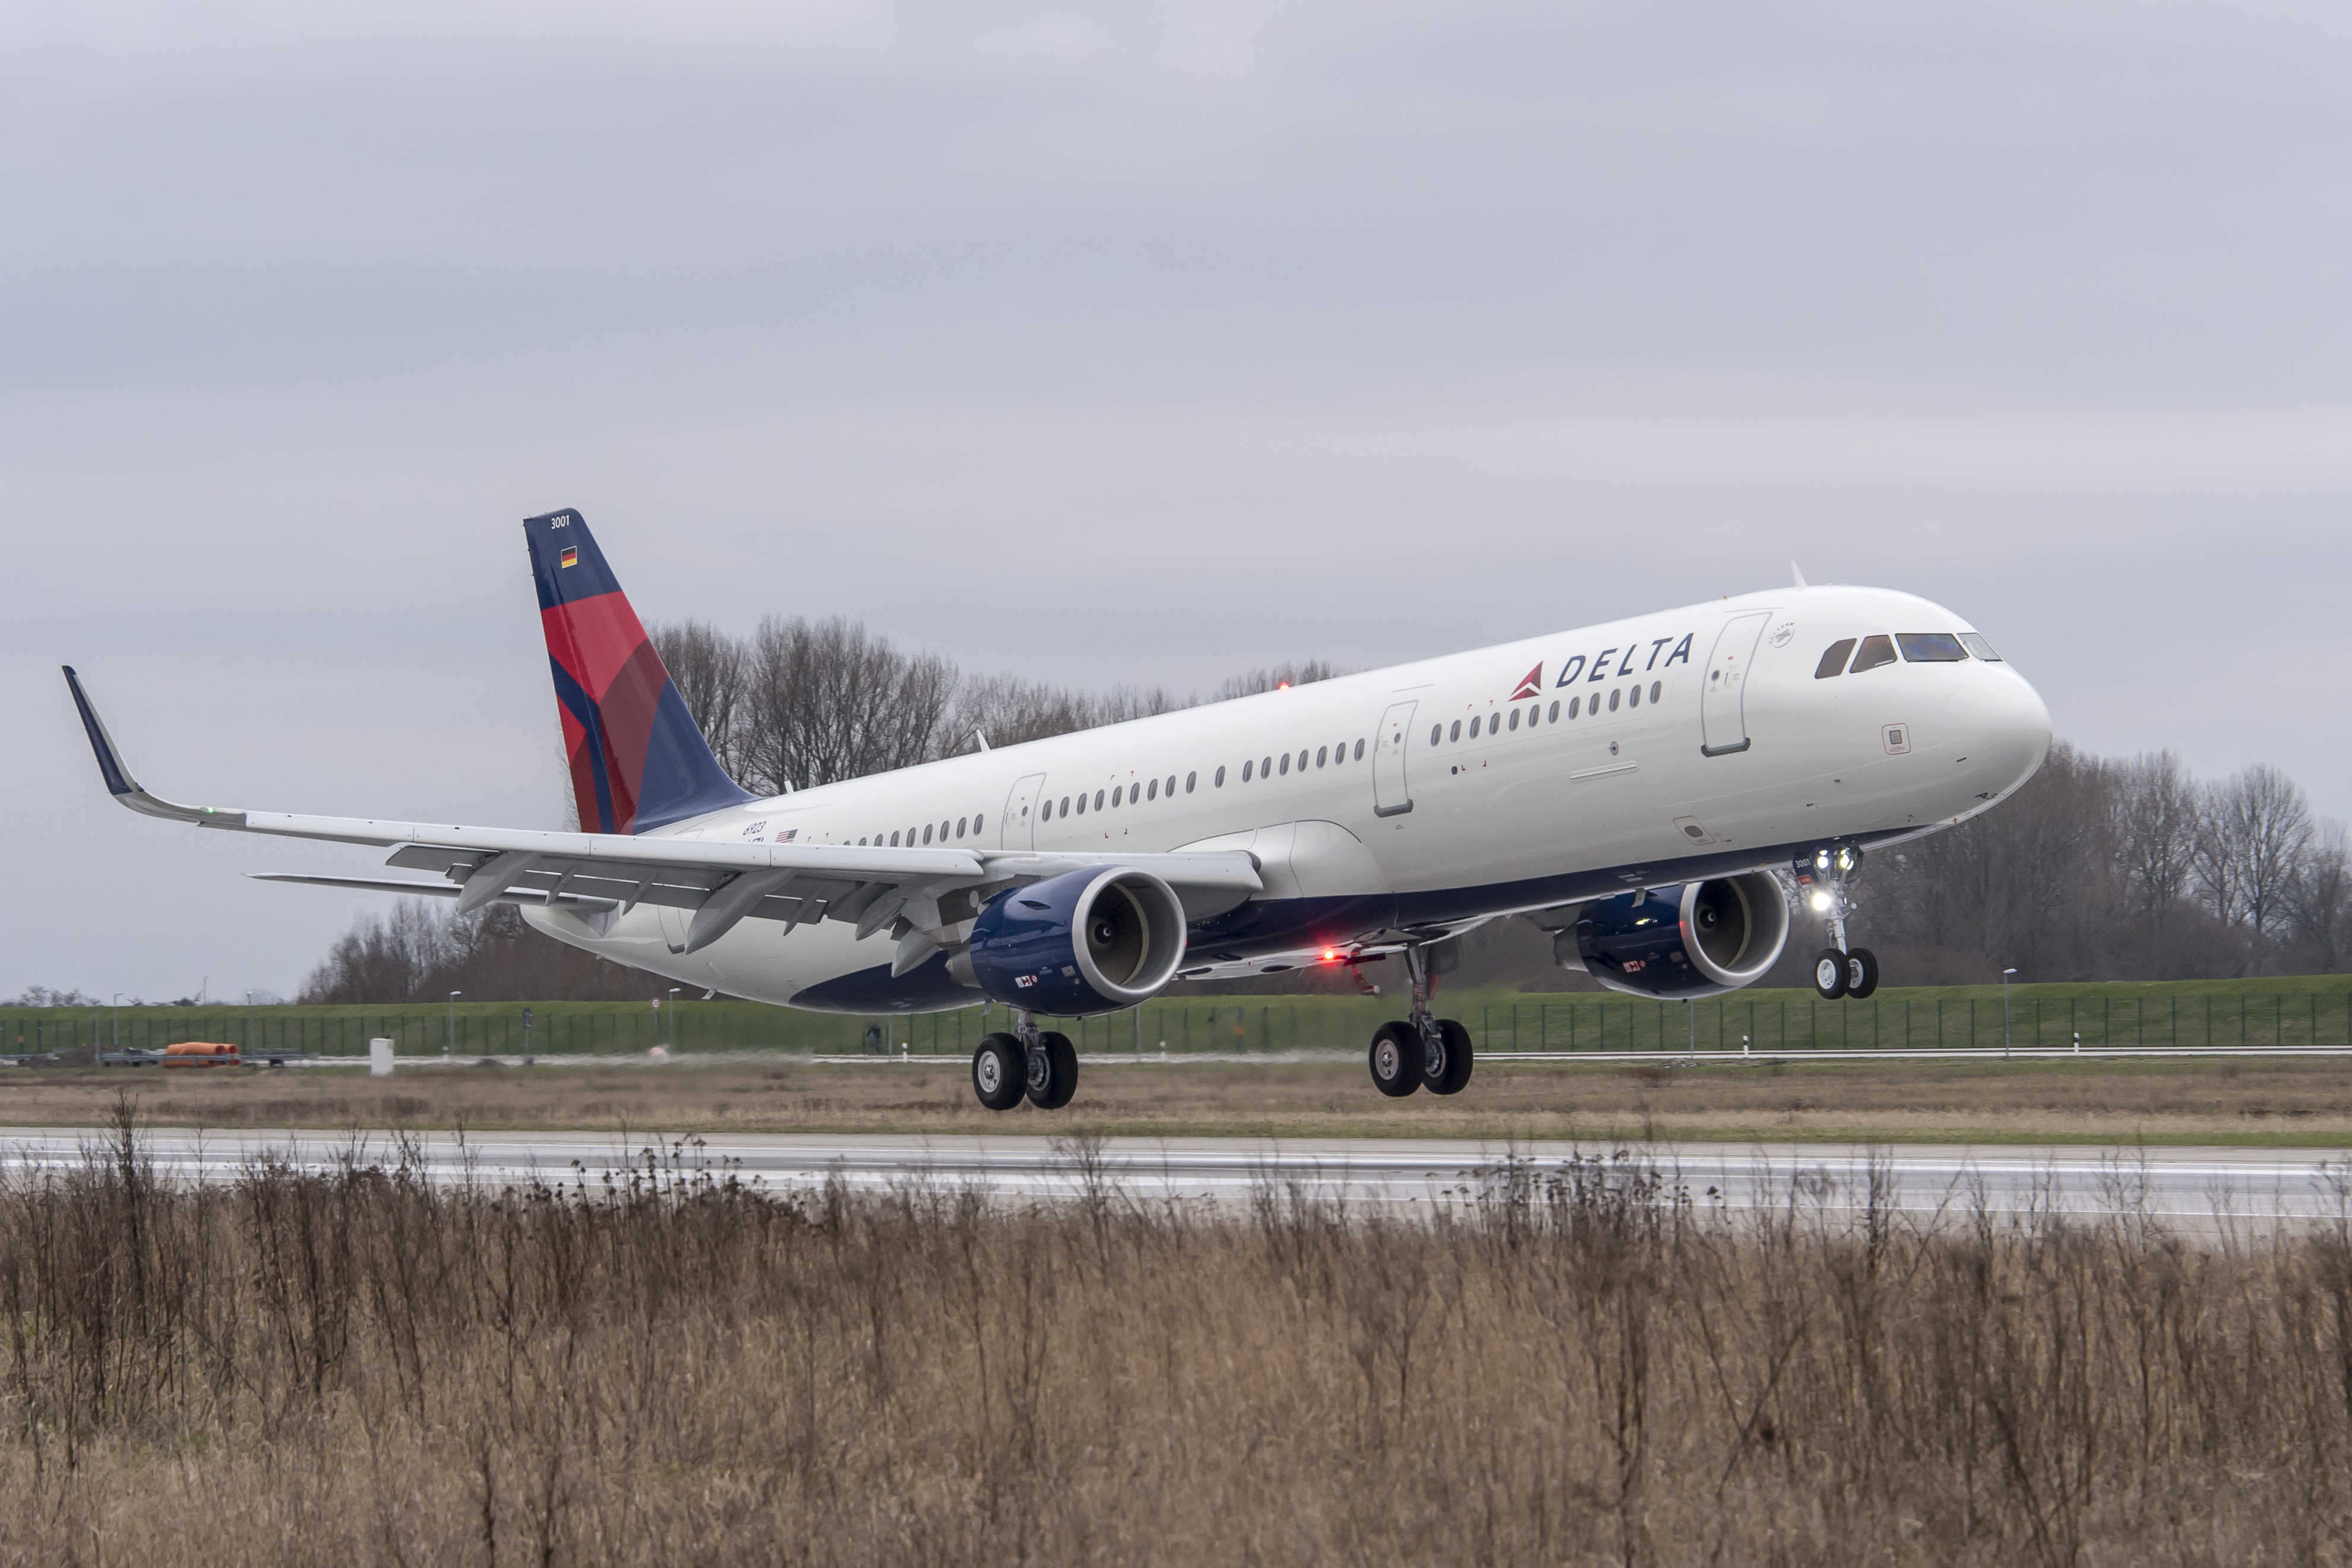 T4EXDelta started to operates to Havana - T4EX